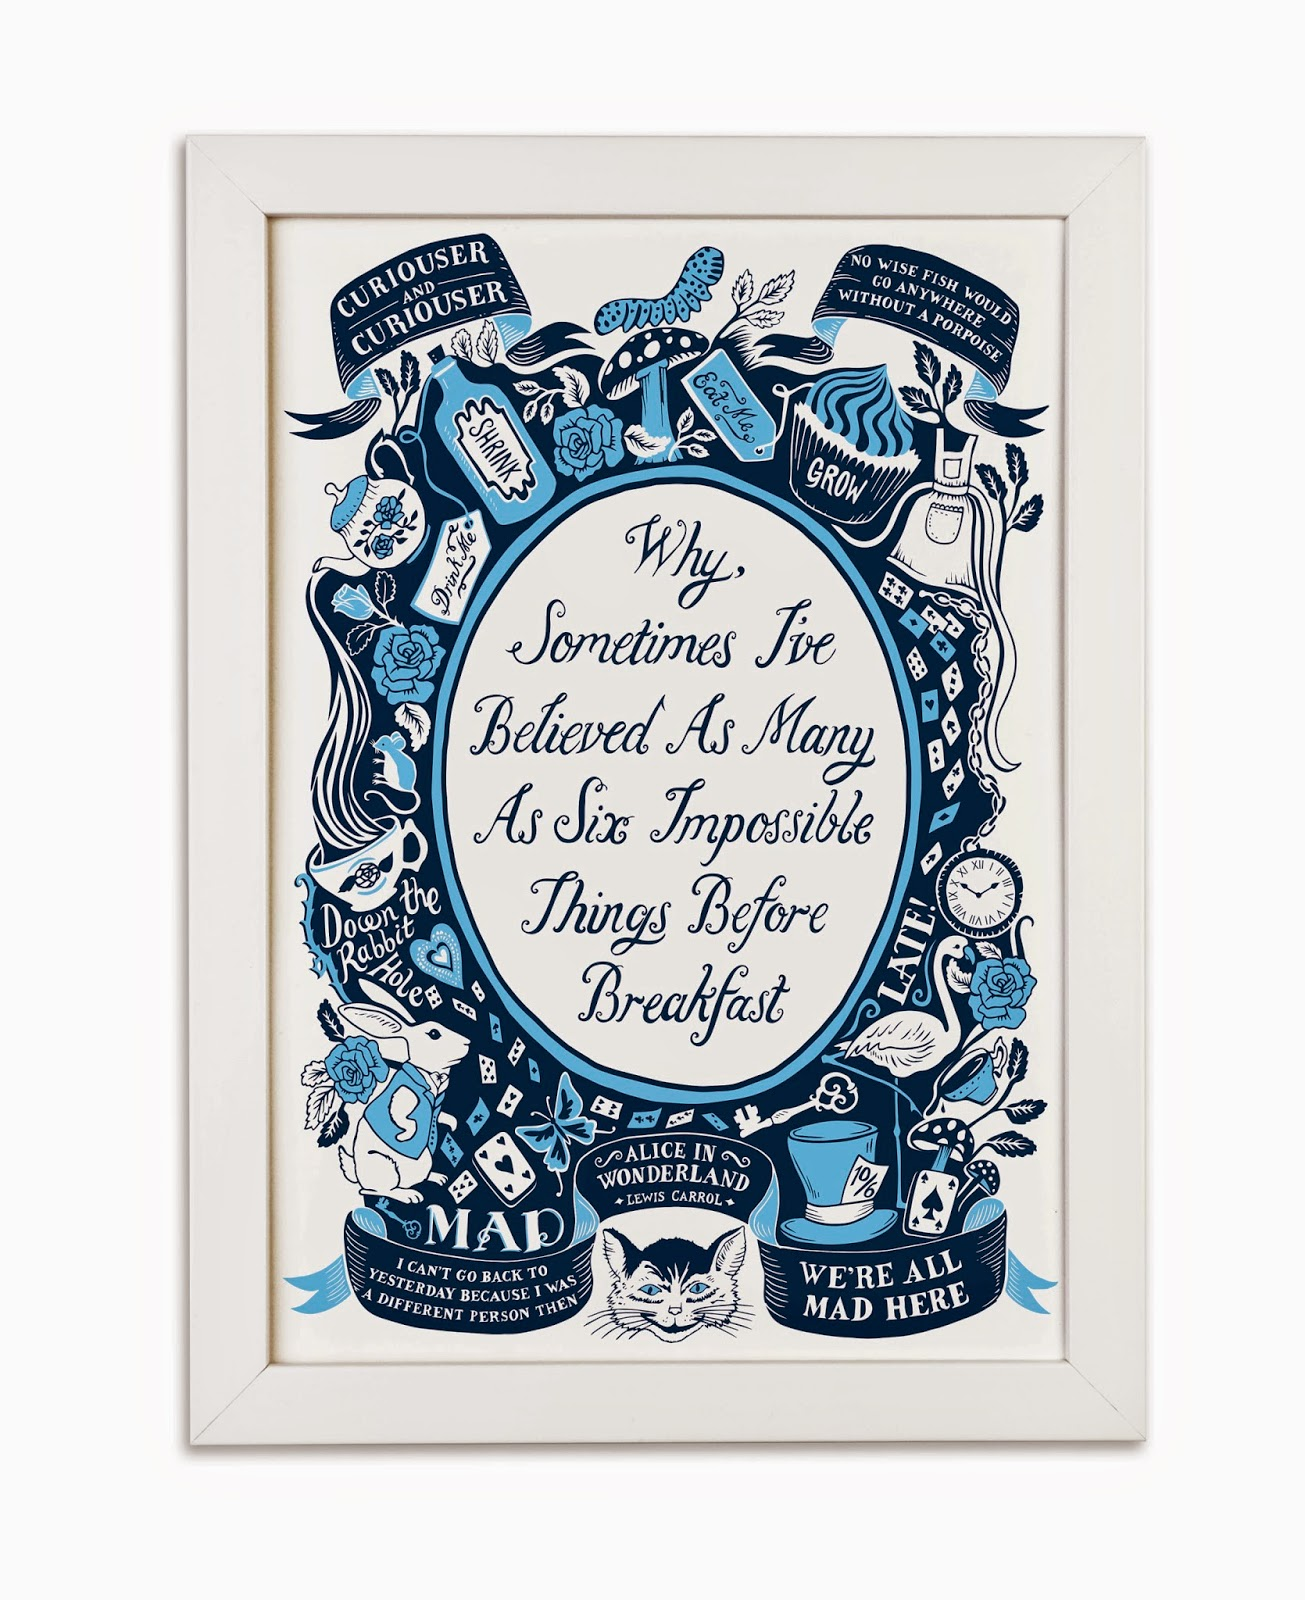 http://www.lucylovesthis.com/ourshop/prod_3518478-Alice-In-Wonderland-Famous-Quotes-Print.html